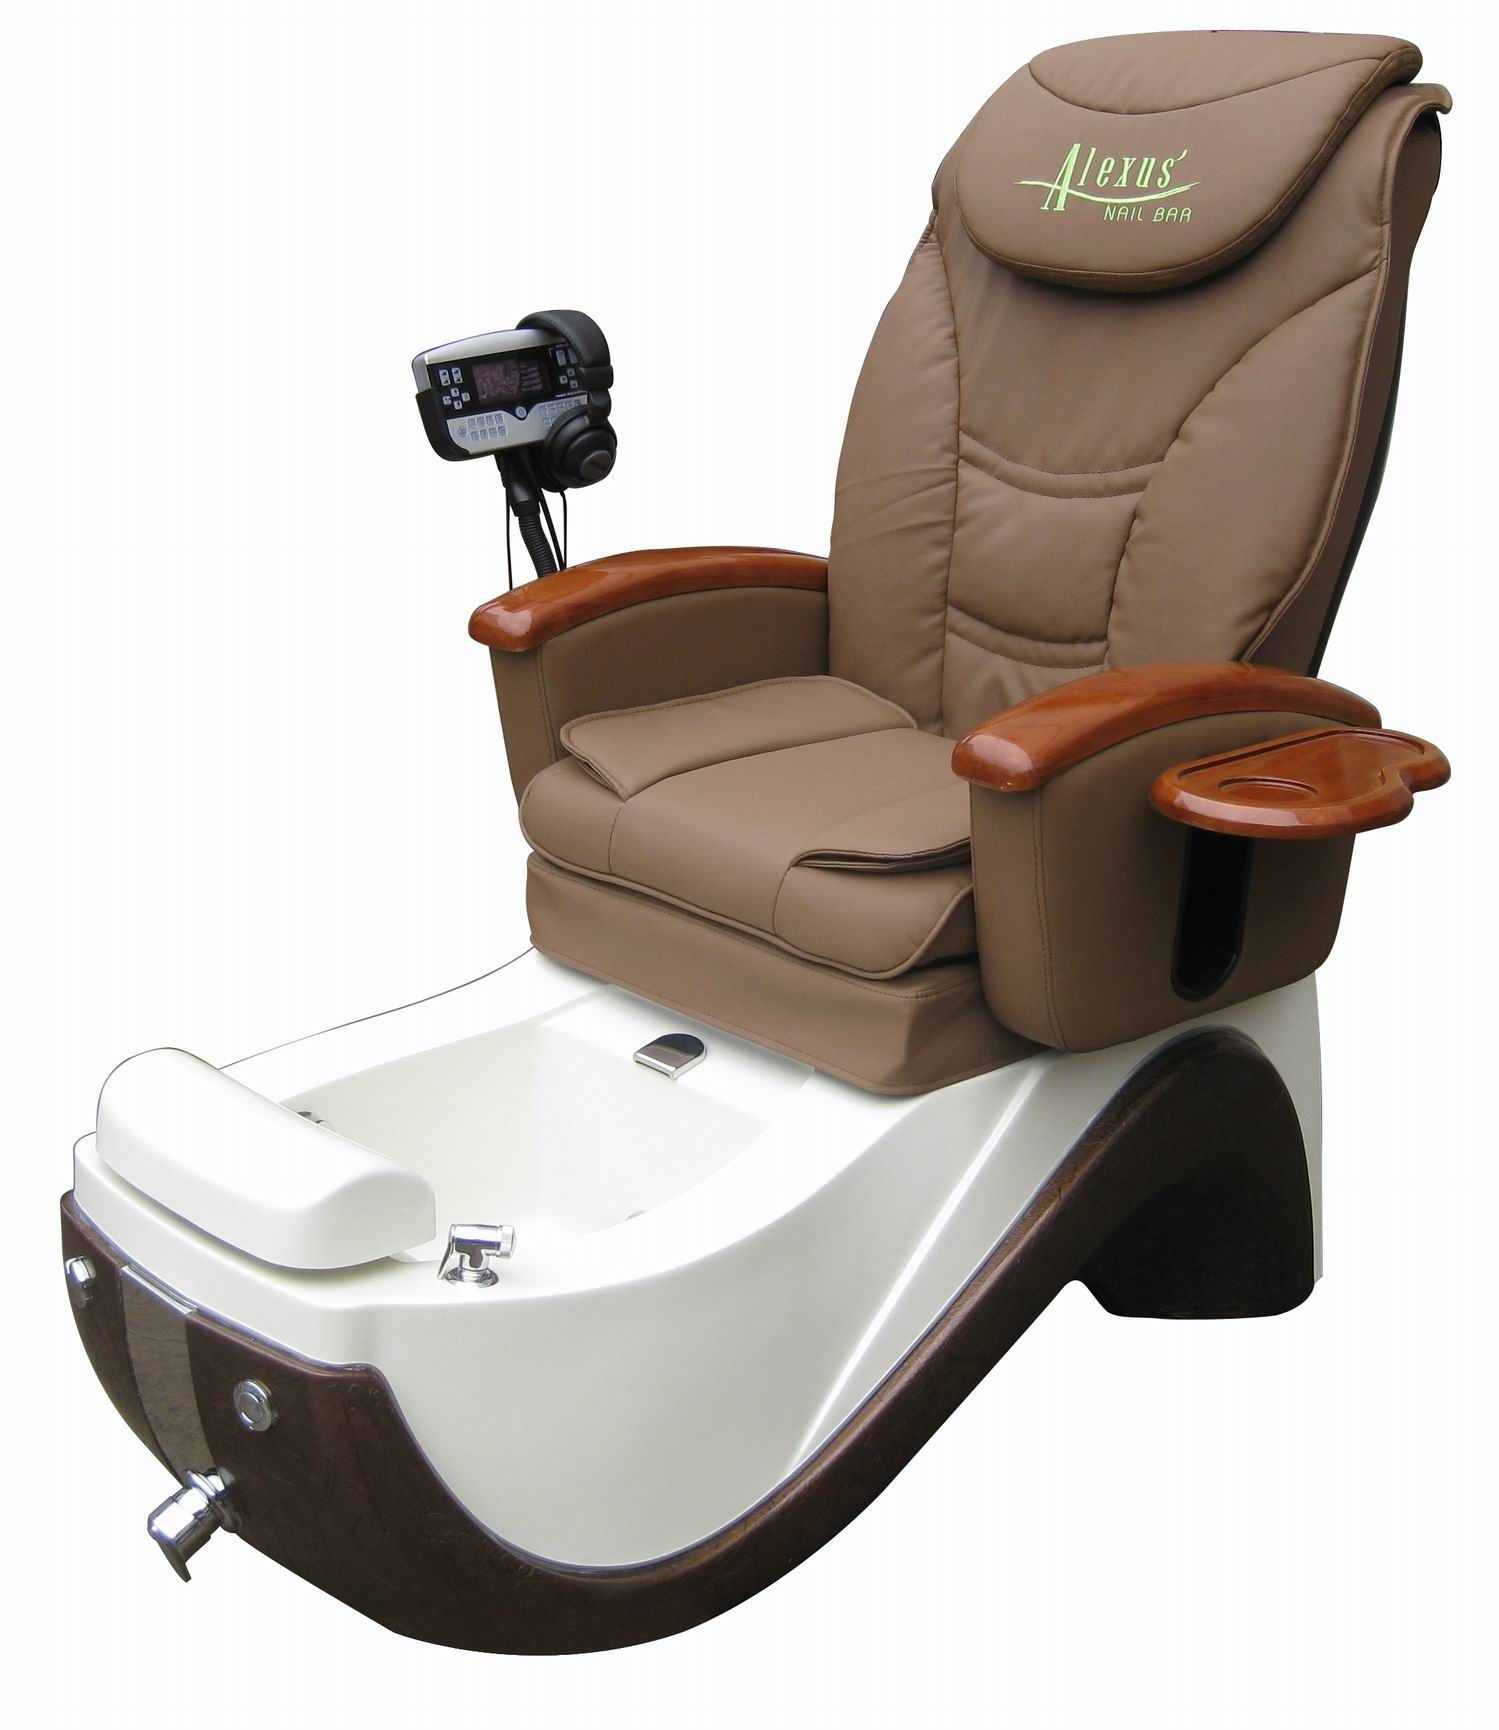 Luxury SPA Pedicure Chair luxurious pedicure Pinterest